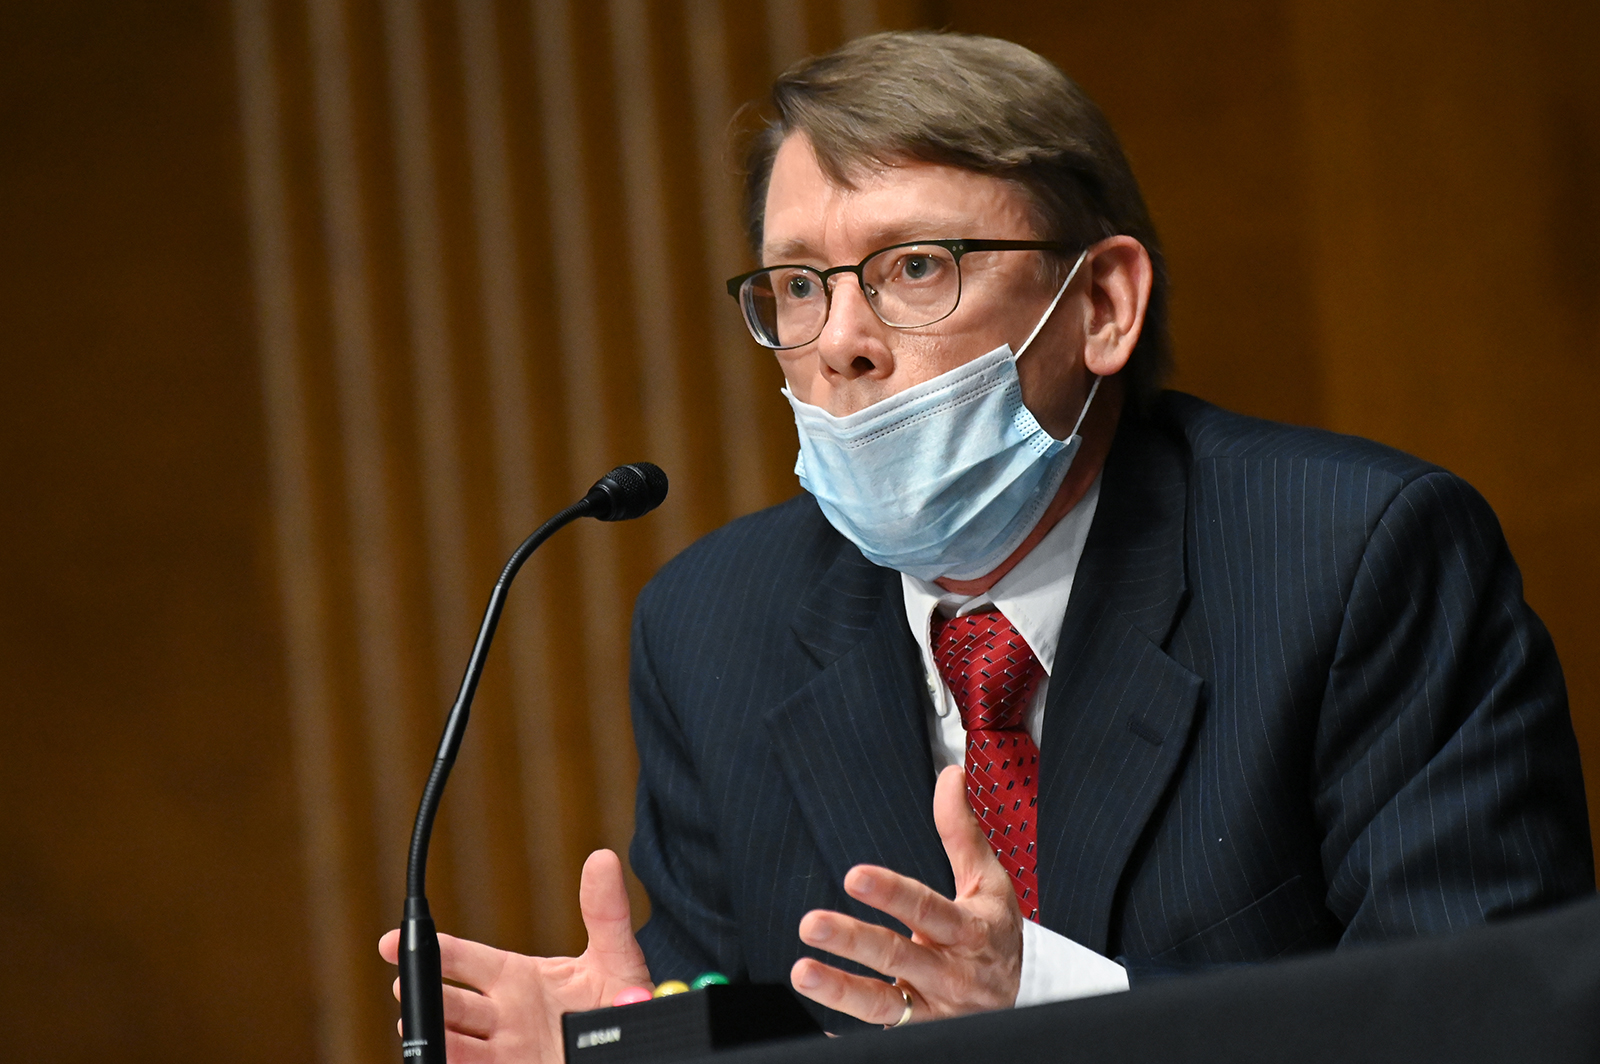 Dr. Jeffrey D. Allen, medical director of the Federal Bureau of Prisons, testifies at a hearing of the Judiciary Committee on Capitol Hill in Washington, on June 2.